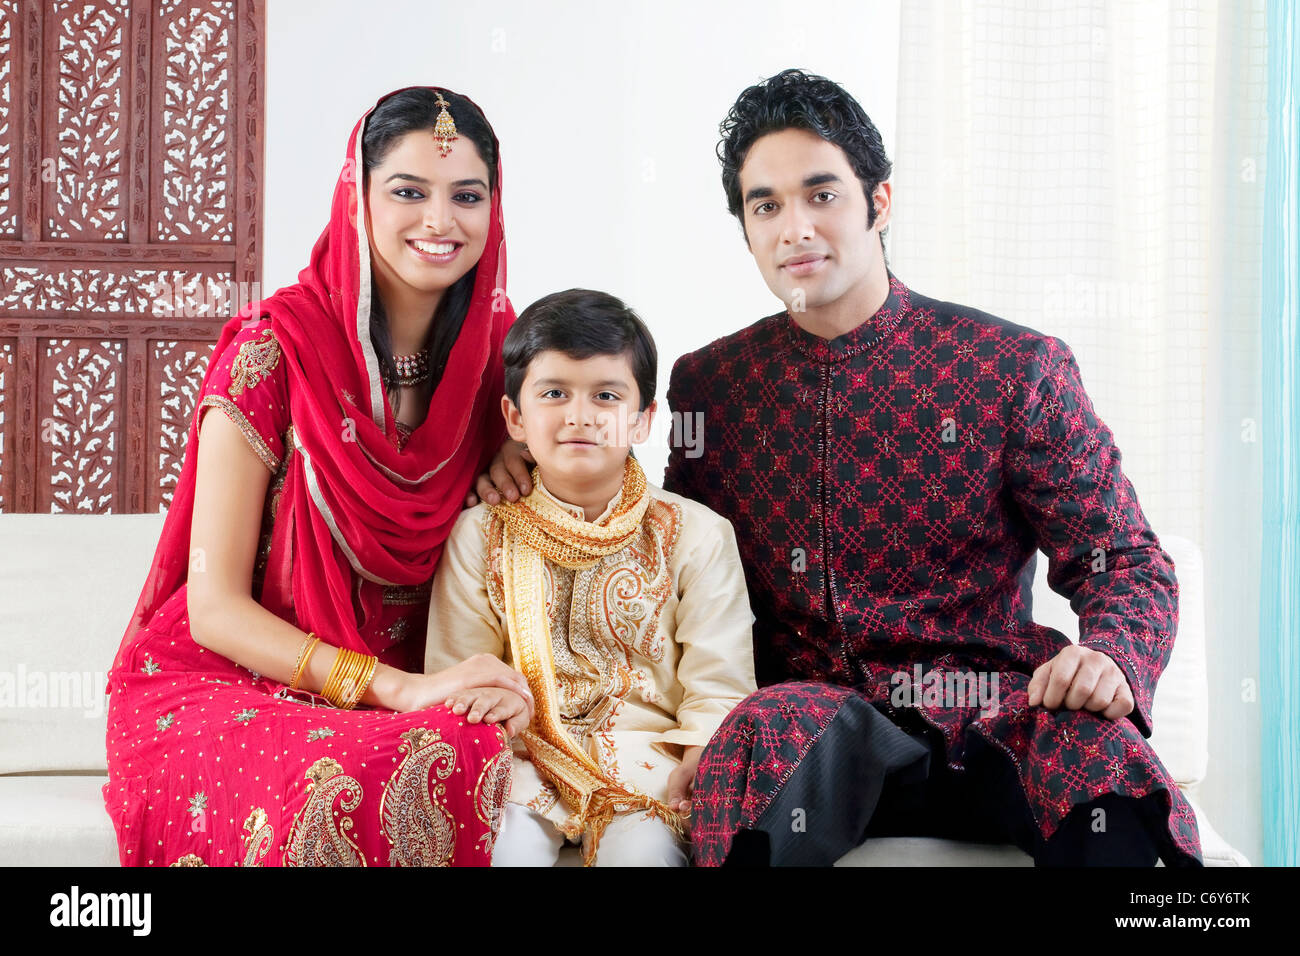 Portrait of a Muslim family - Stock Image